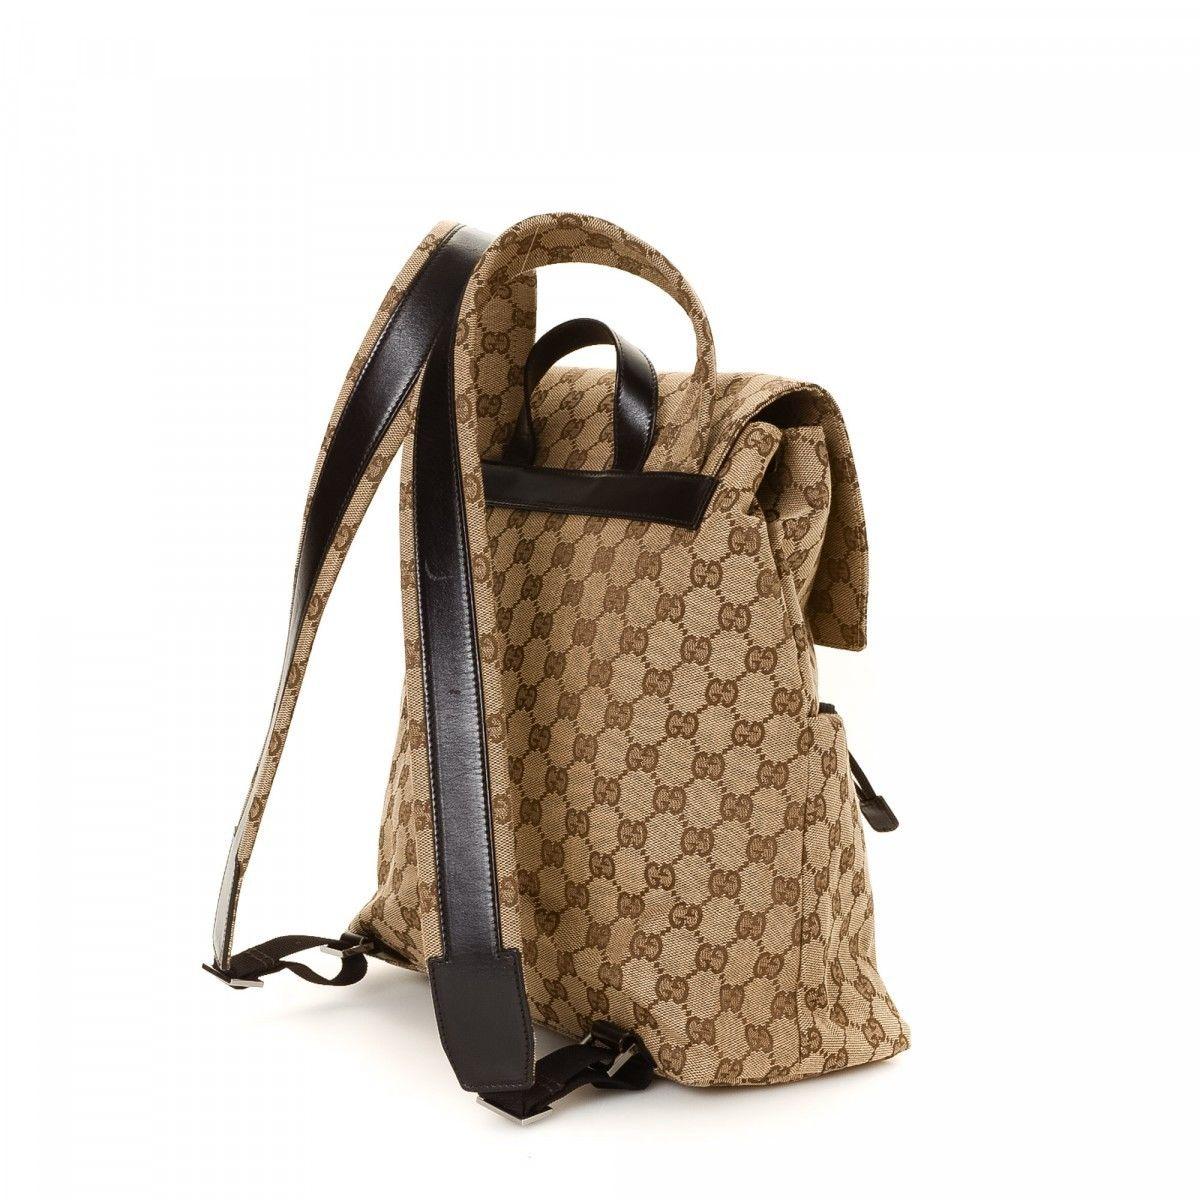 e235142cdede Gucci GG Backpack. LXRandCo guarantees this is an authentic vintage Gucci  backpack. This signature book bag in beautiful beige is made in gg canvas.